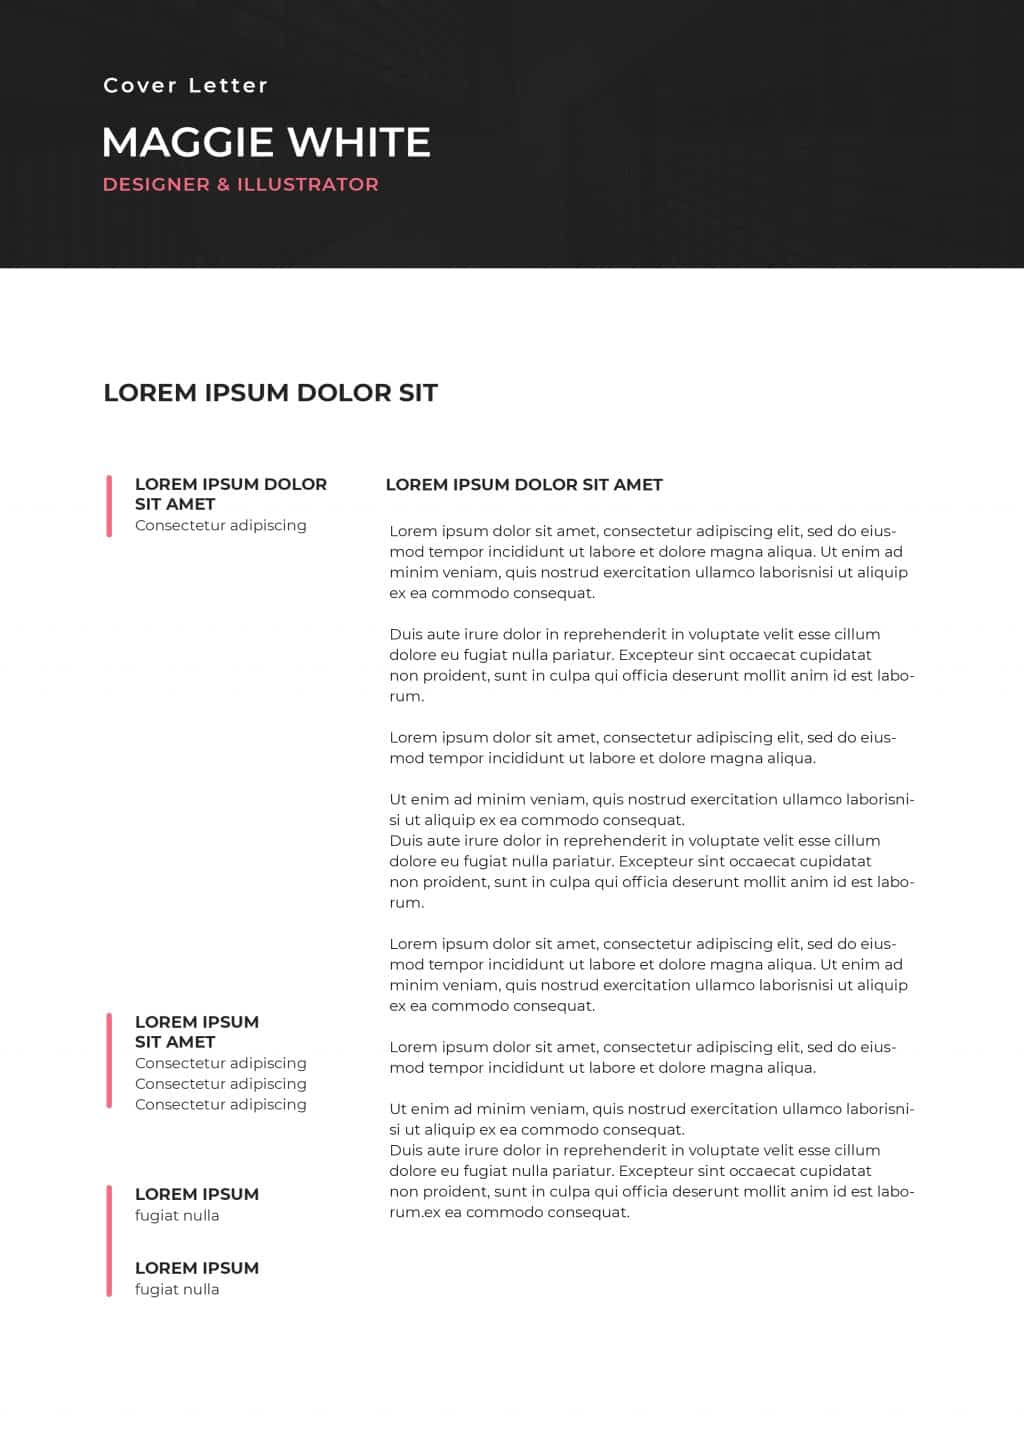 Best College Resume Templates 2020: 5 colors - $8 - cover letter 1